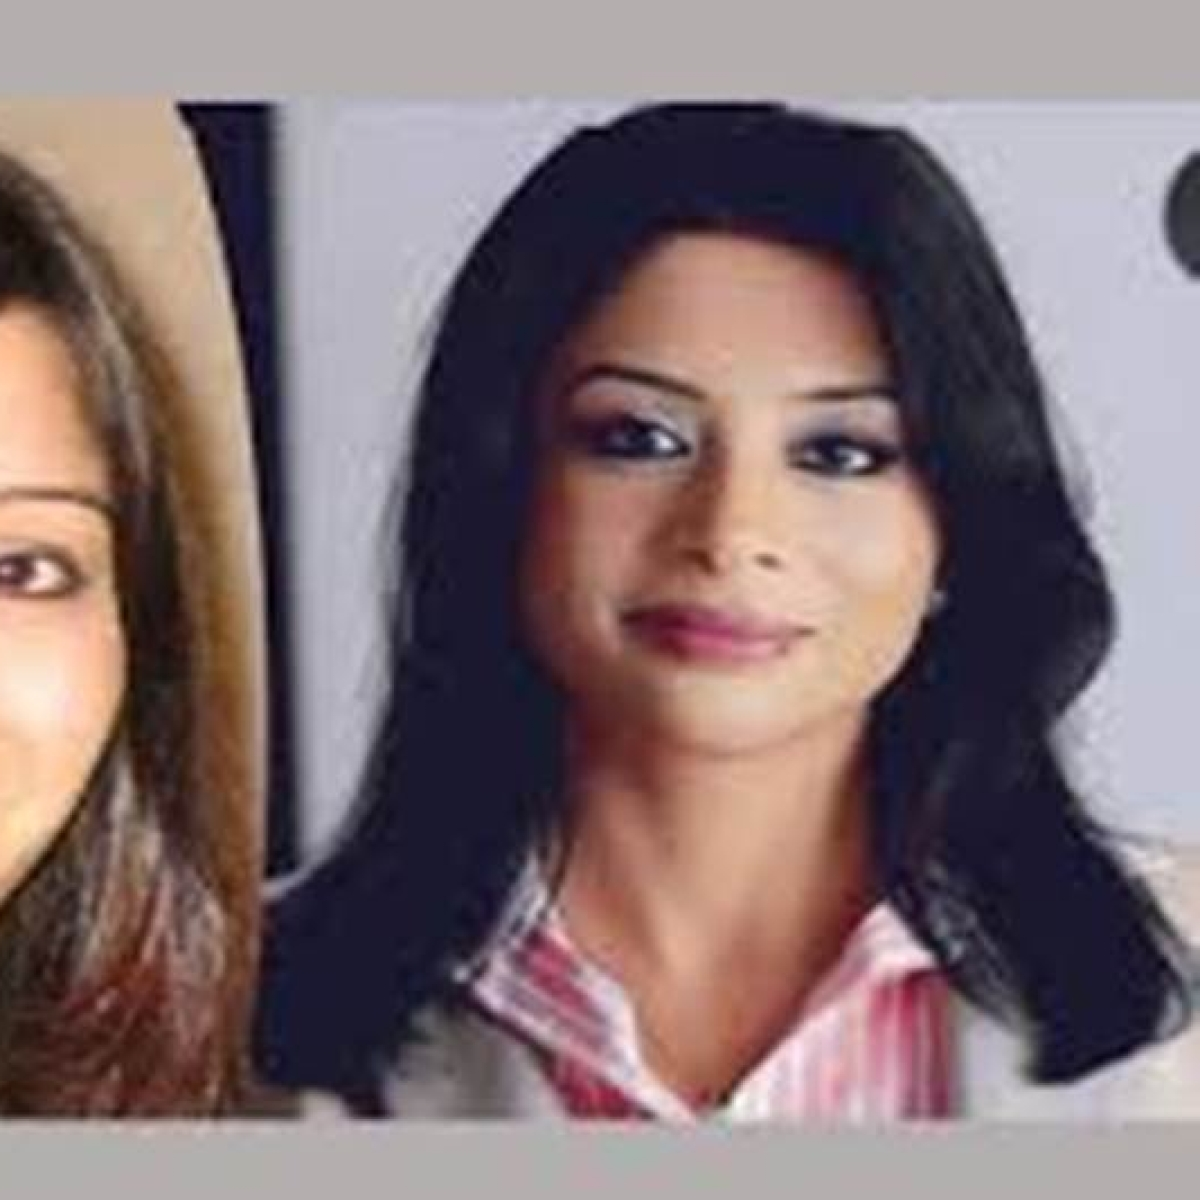 CBI opposes Indrani's bail plea in Sheena Bora murder case